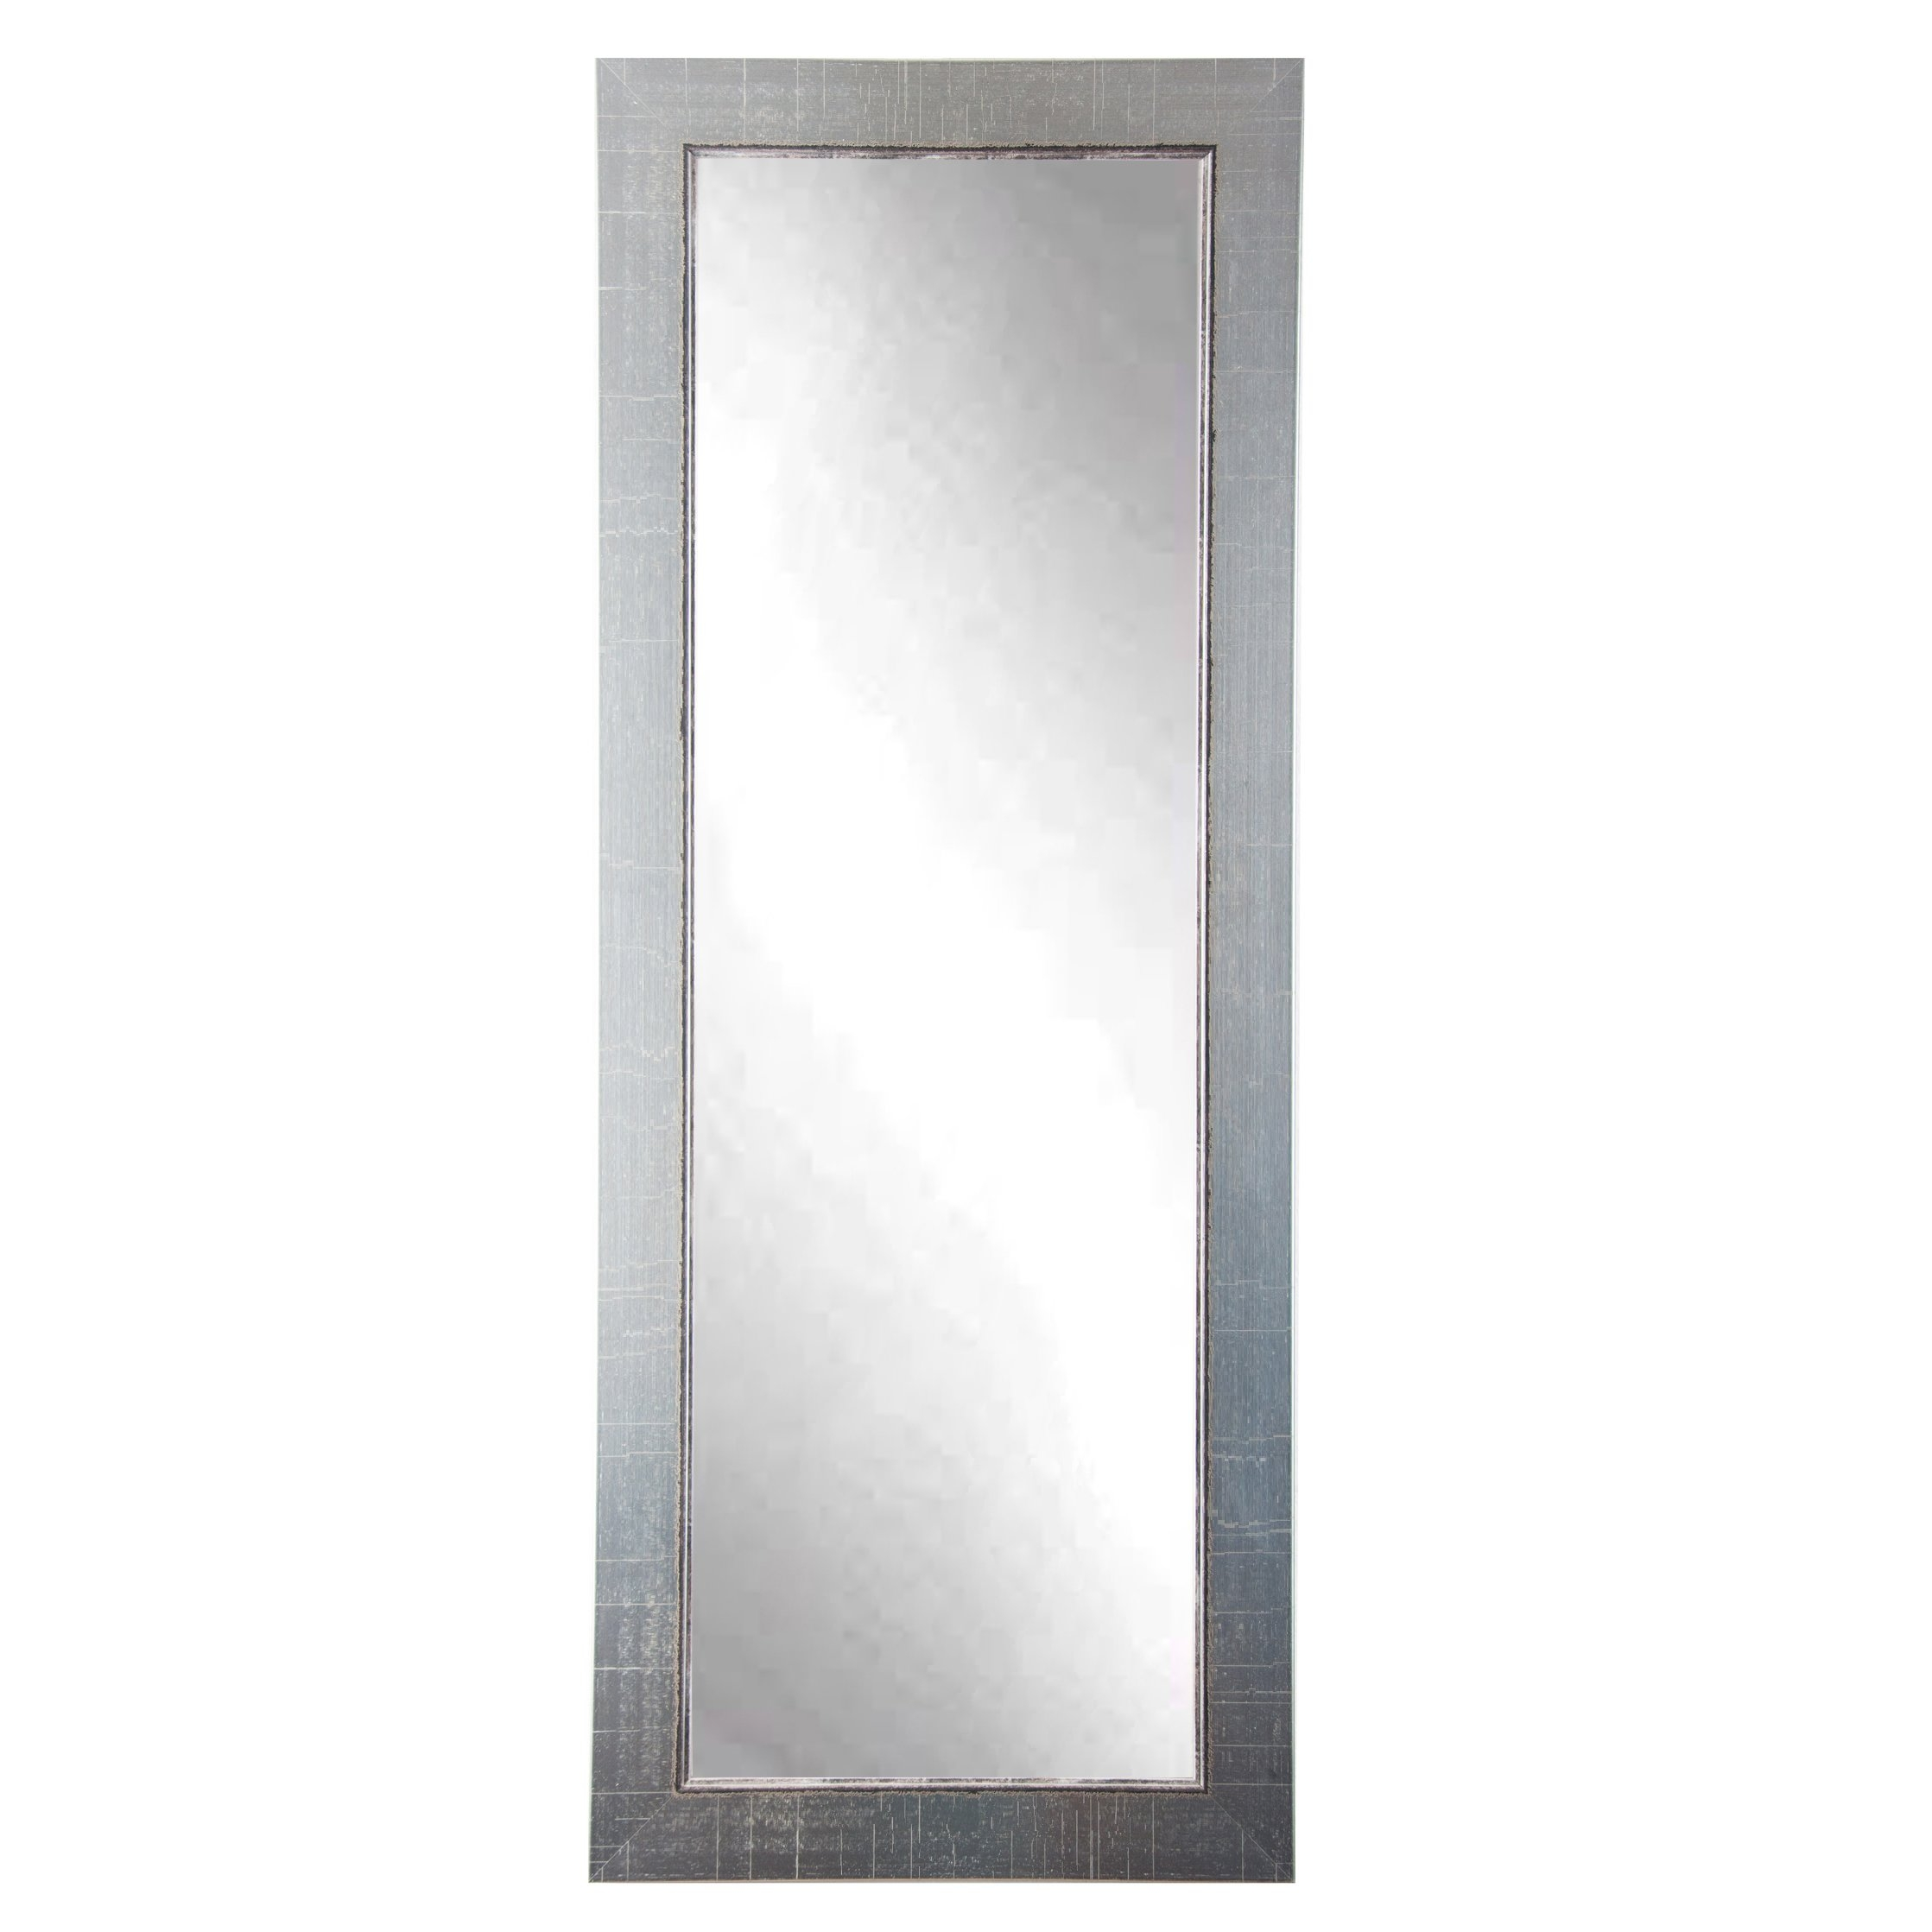 Silver Full Length Wall Mirror Decoration And Useful Decoration Pertaining To Silver Full Length Mirror (Image 12 of 15)